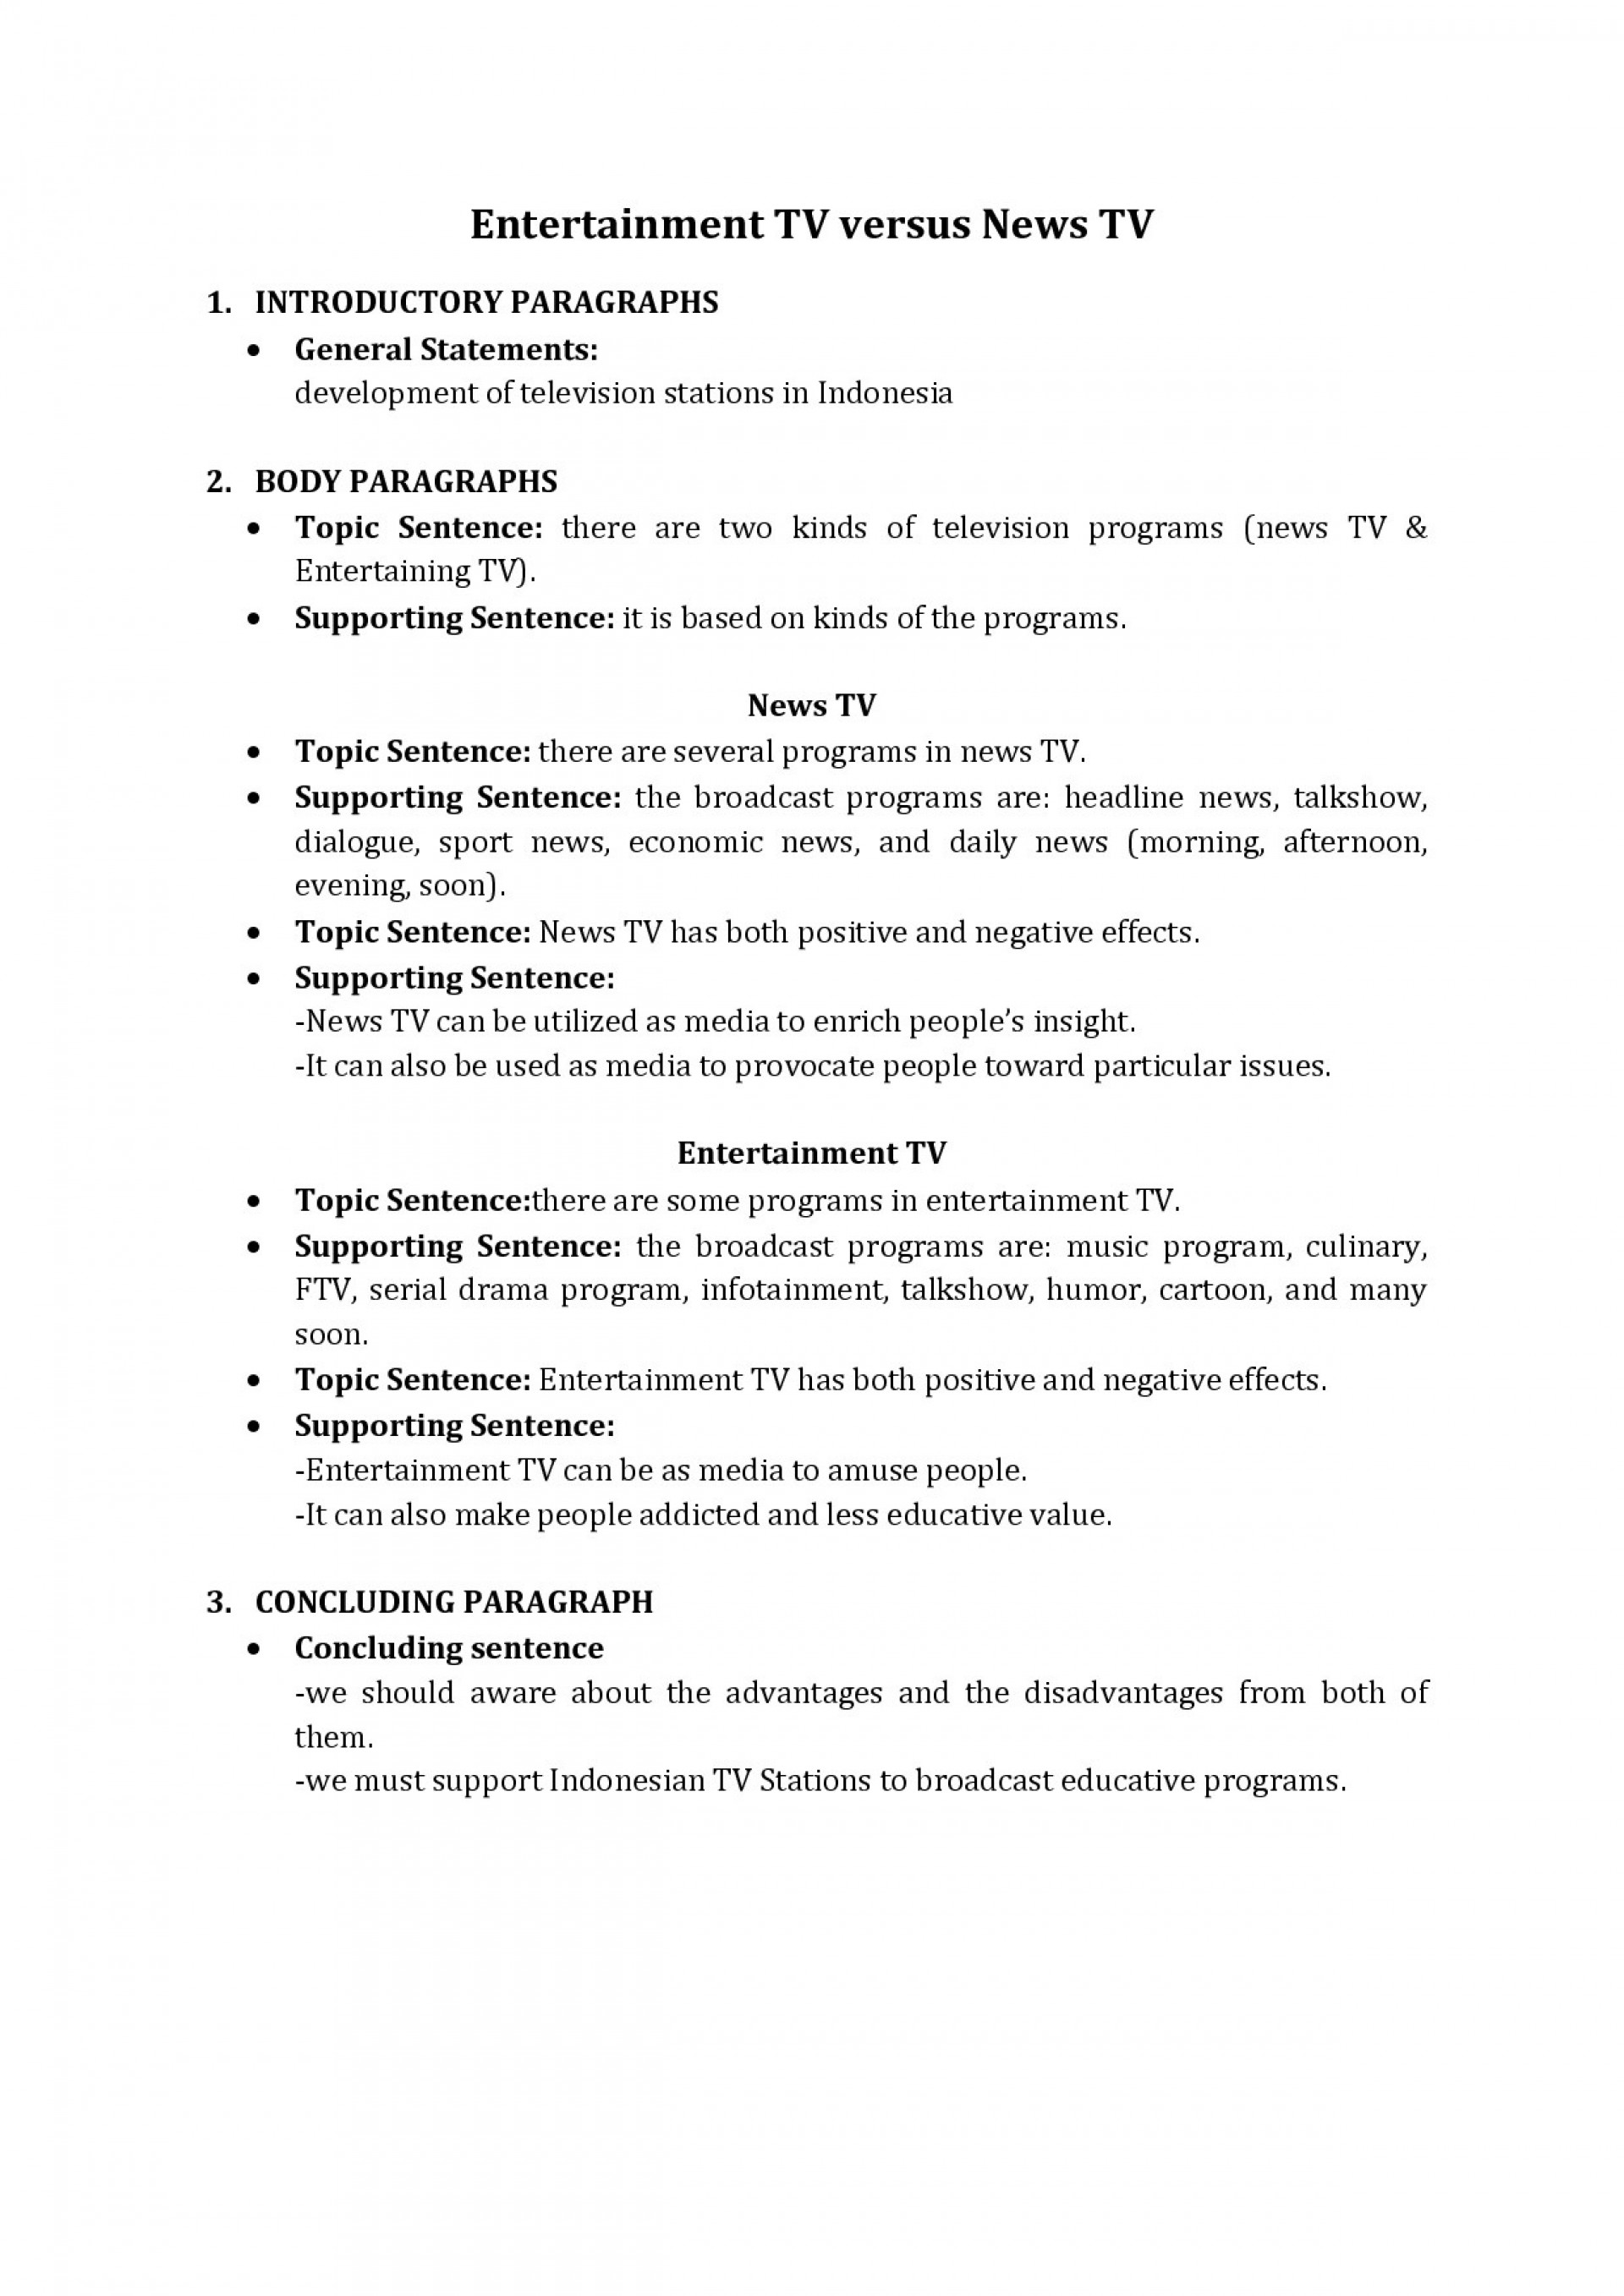 015 Essay Example College Format Examples World Of Throughout Paper Outline S Sample Template Css Pdf Layout Compare And Contrast Fearsome Research In Apa Informative Argumentative 1920